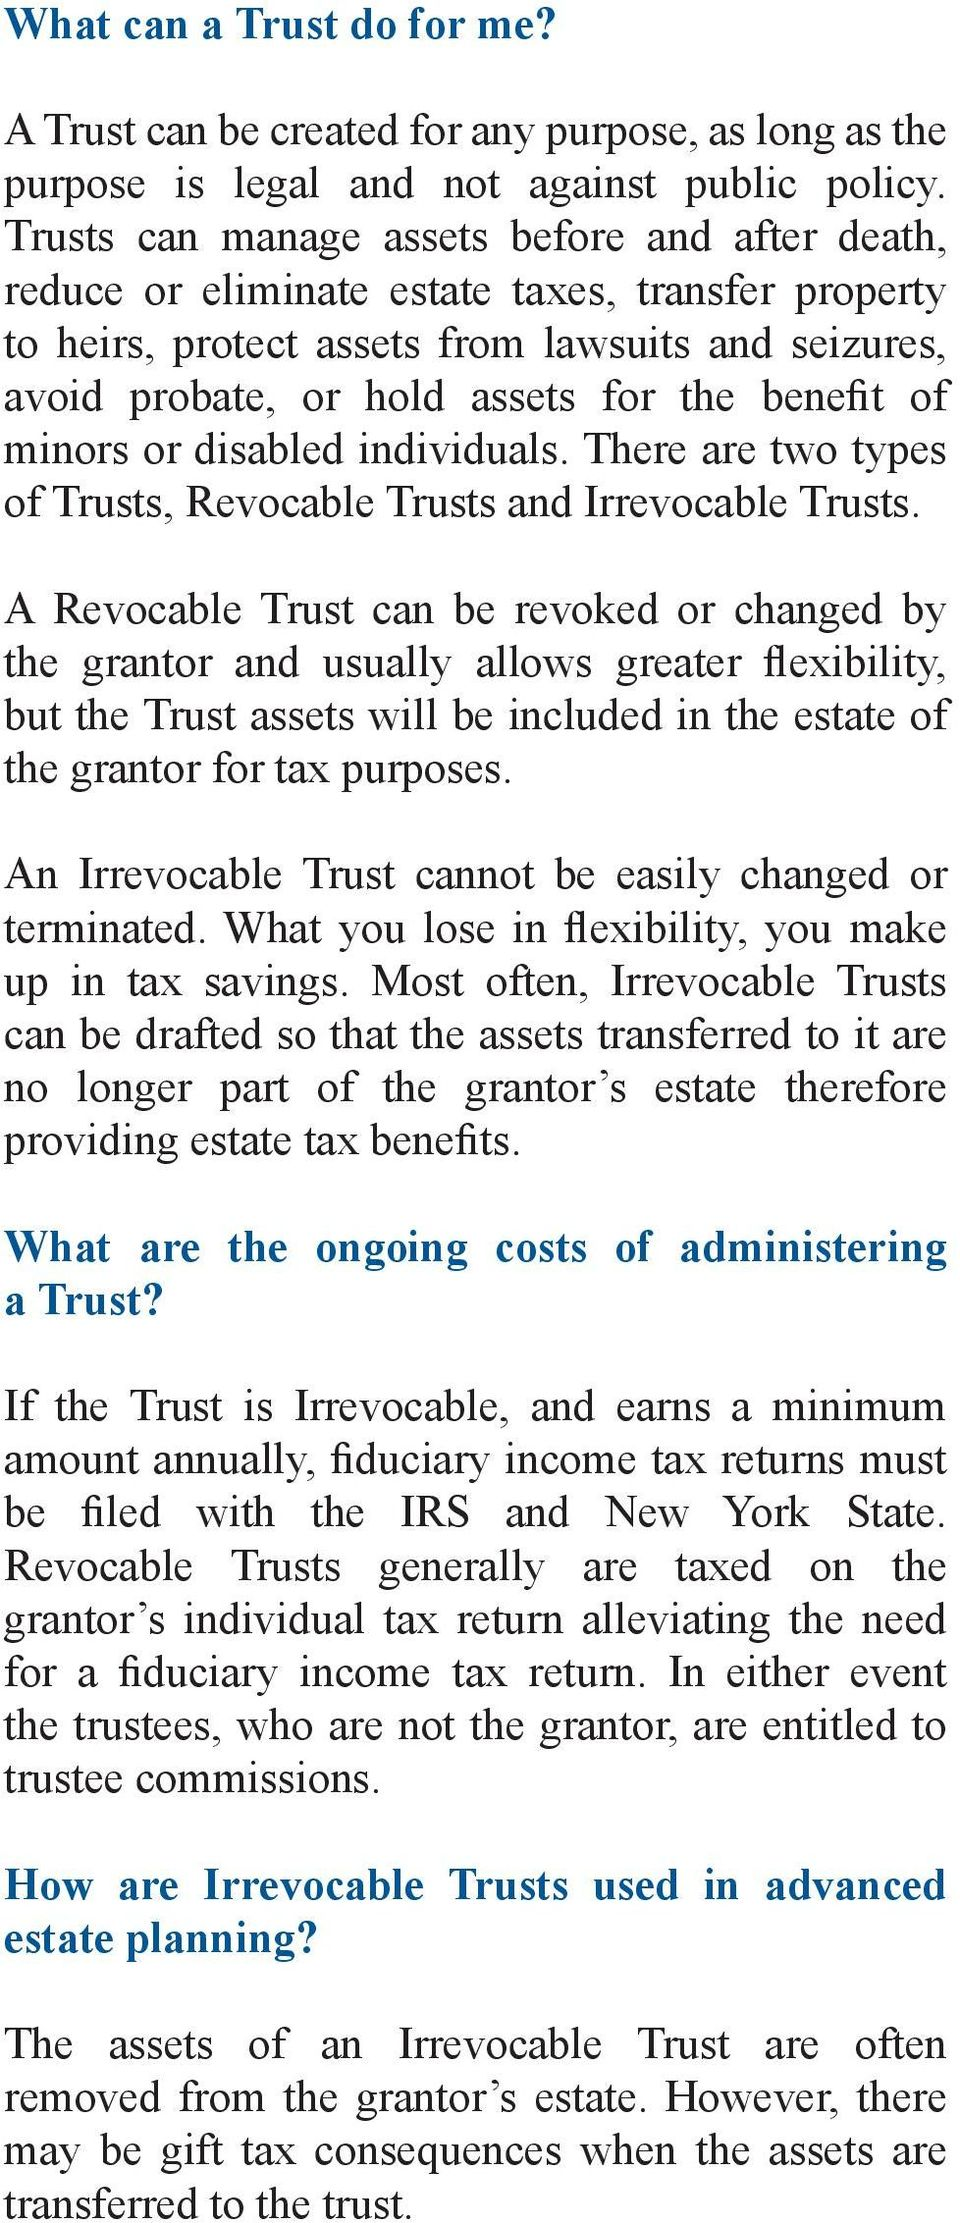 of minors or disabled individuals. There are two types of Trusts, Revocable Trusts and Irrevocable Trusts.